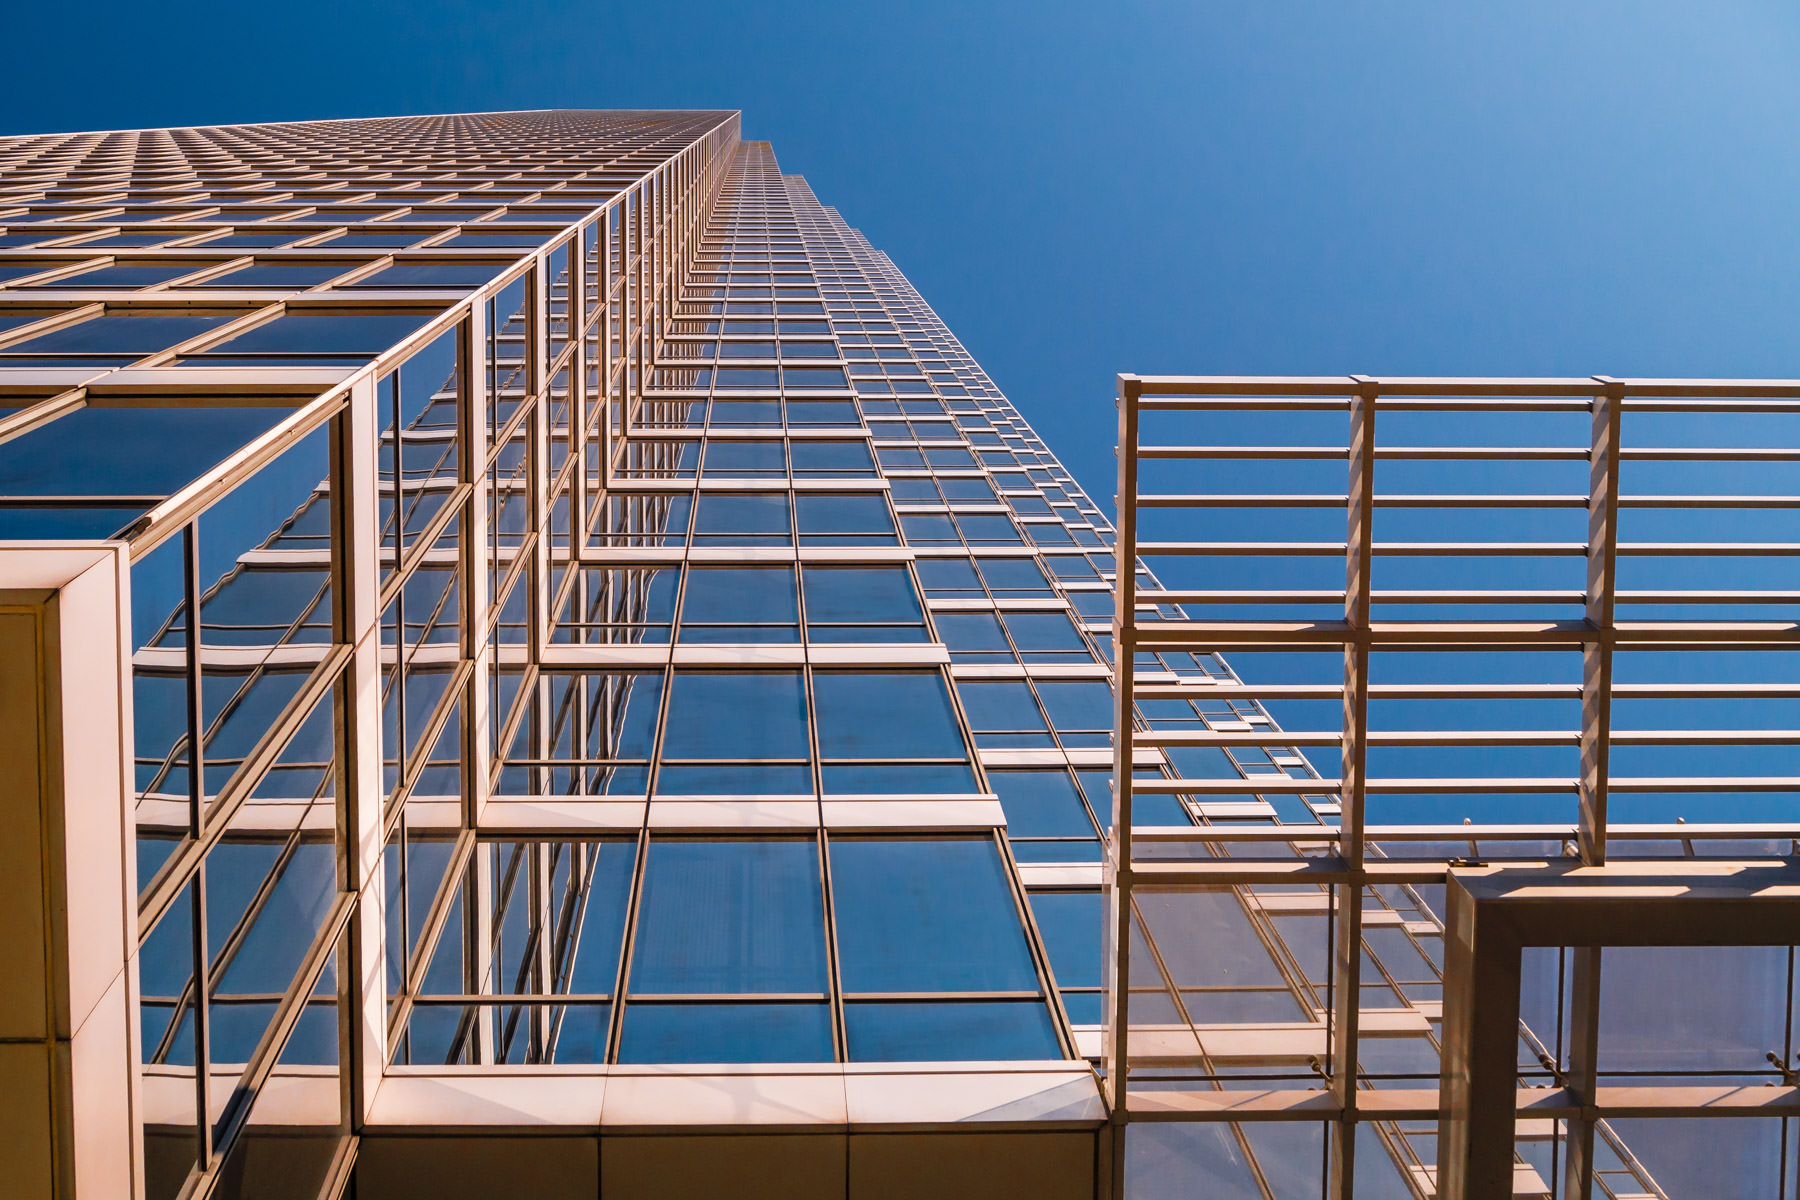 Downtown Dallas' 72-story-tall Bank of America Plaza rises into the clear North Texas sky.